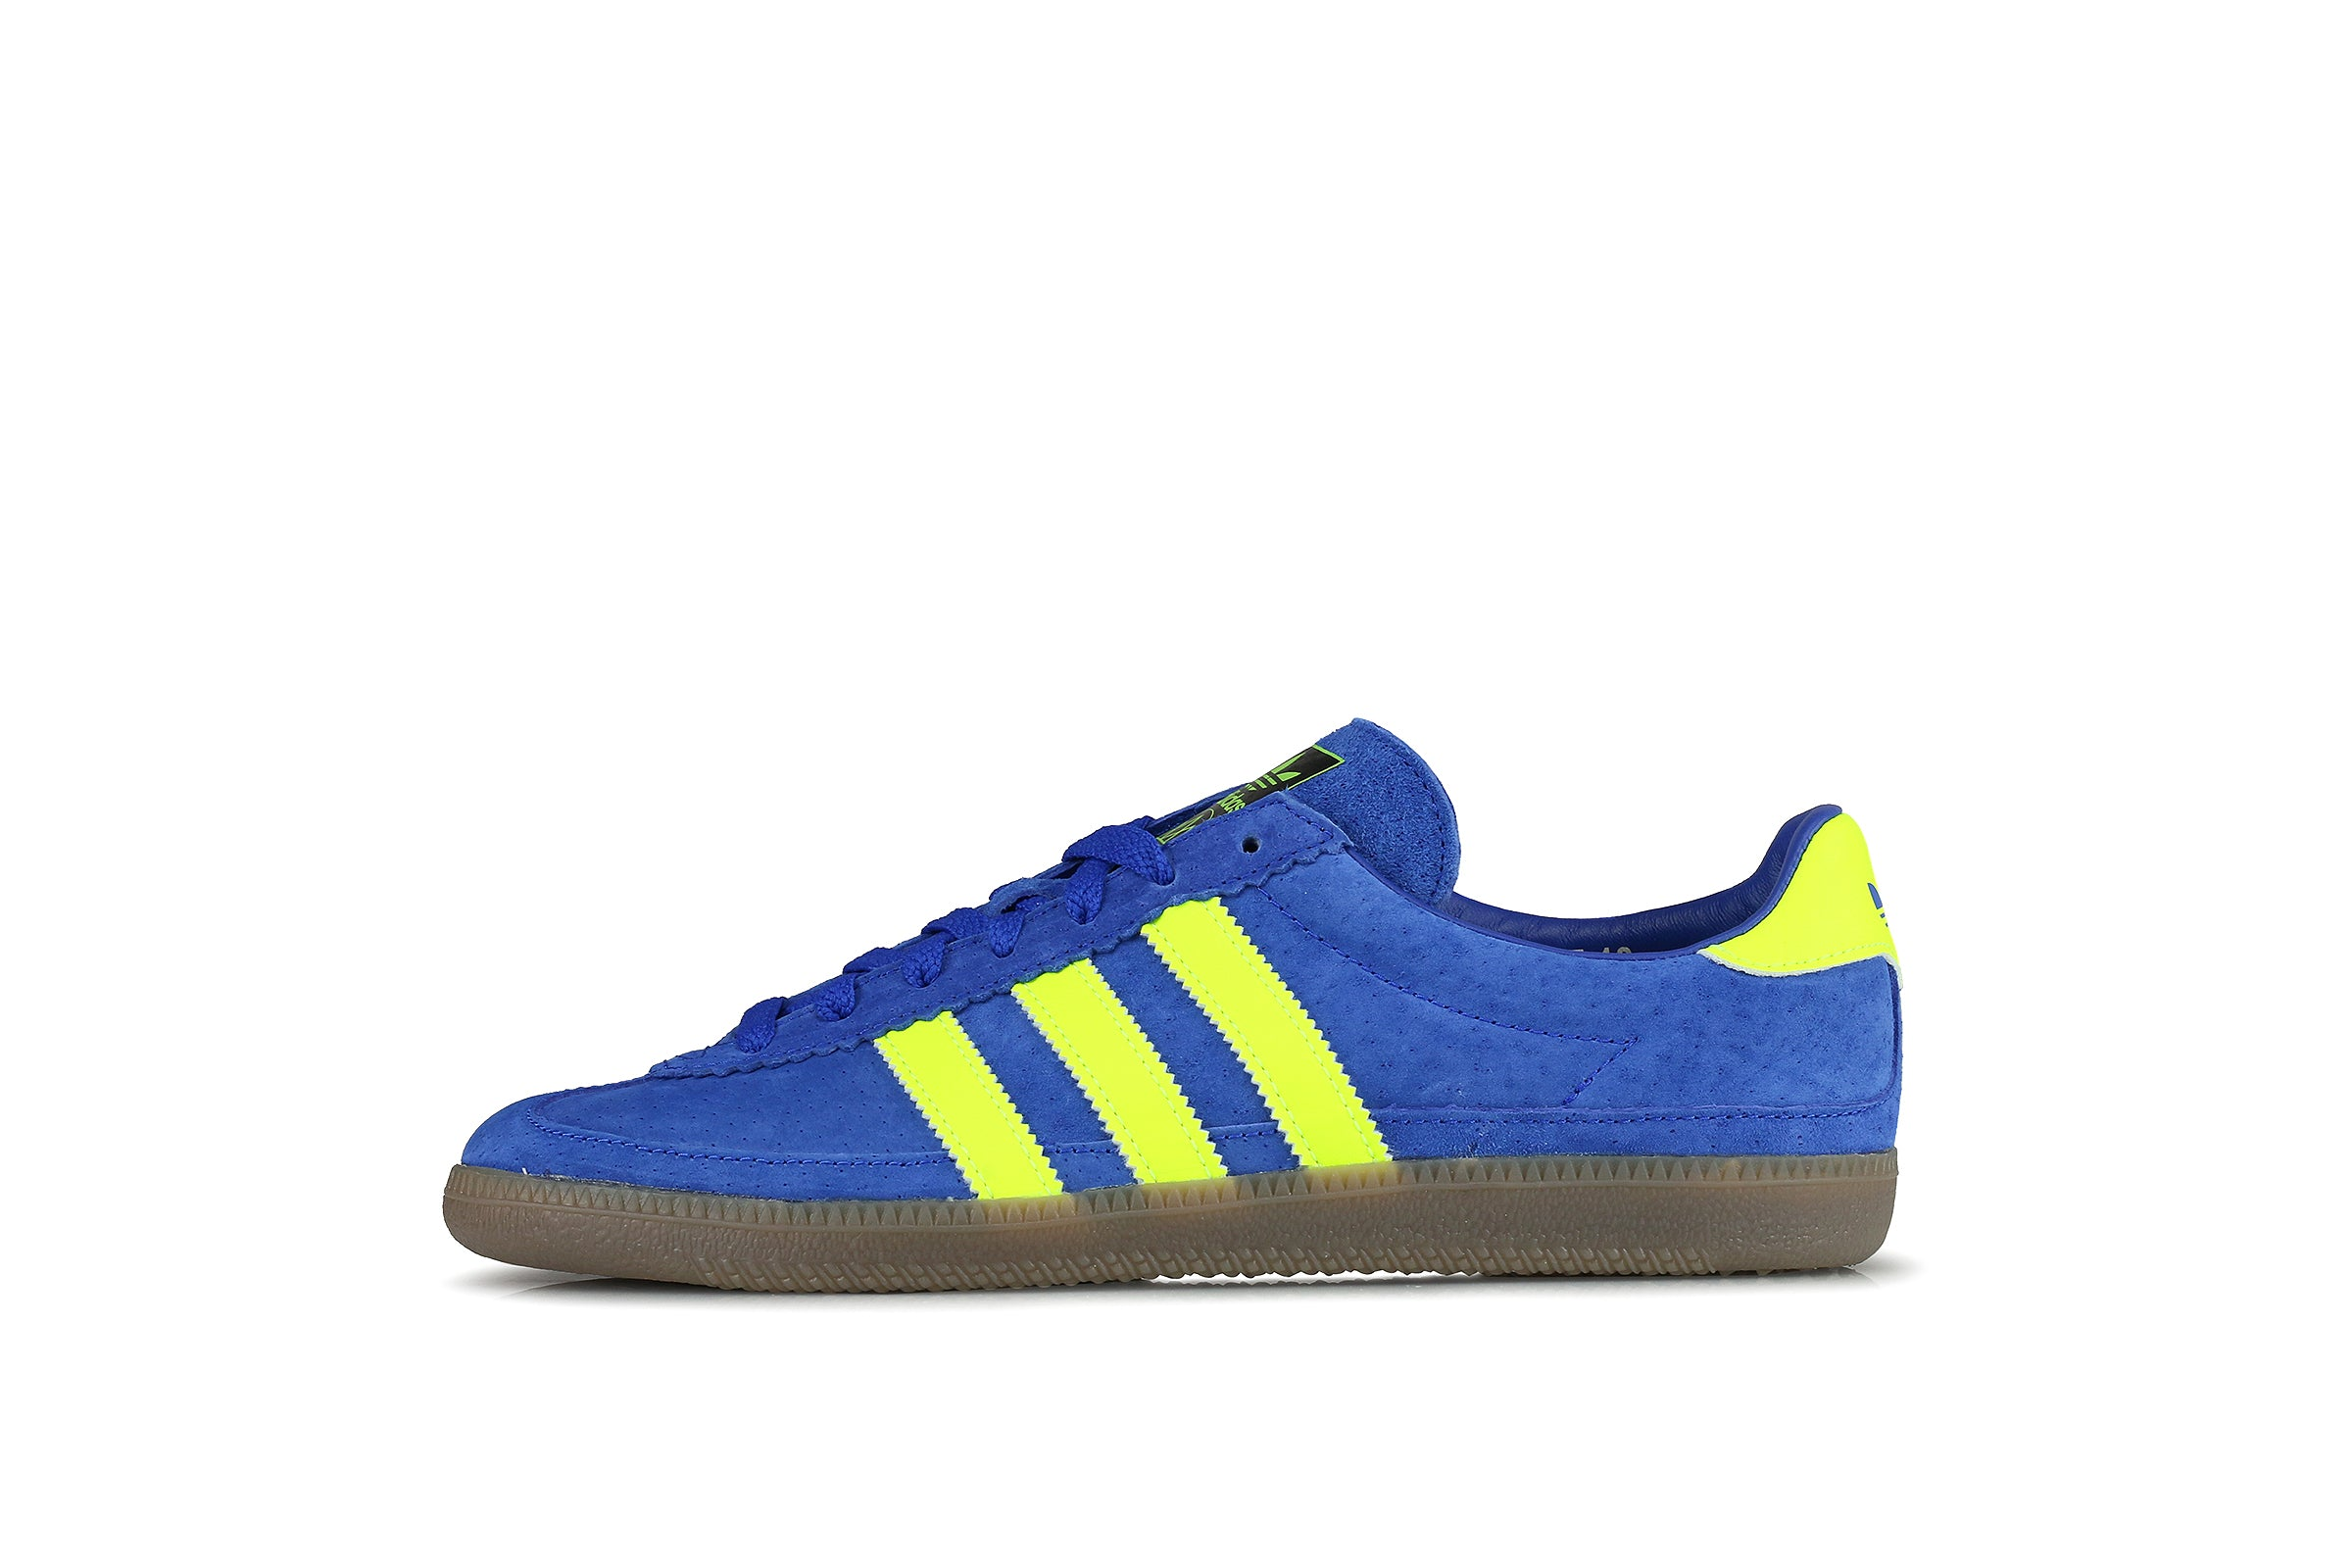 reputable site 0d795 30df9 Adidas Whalley SPZL